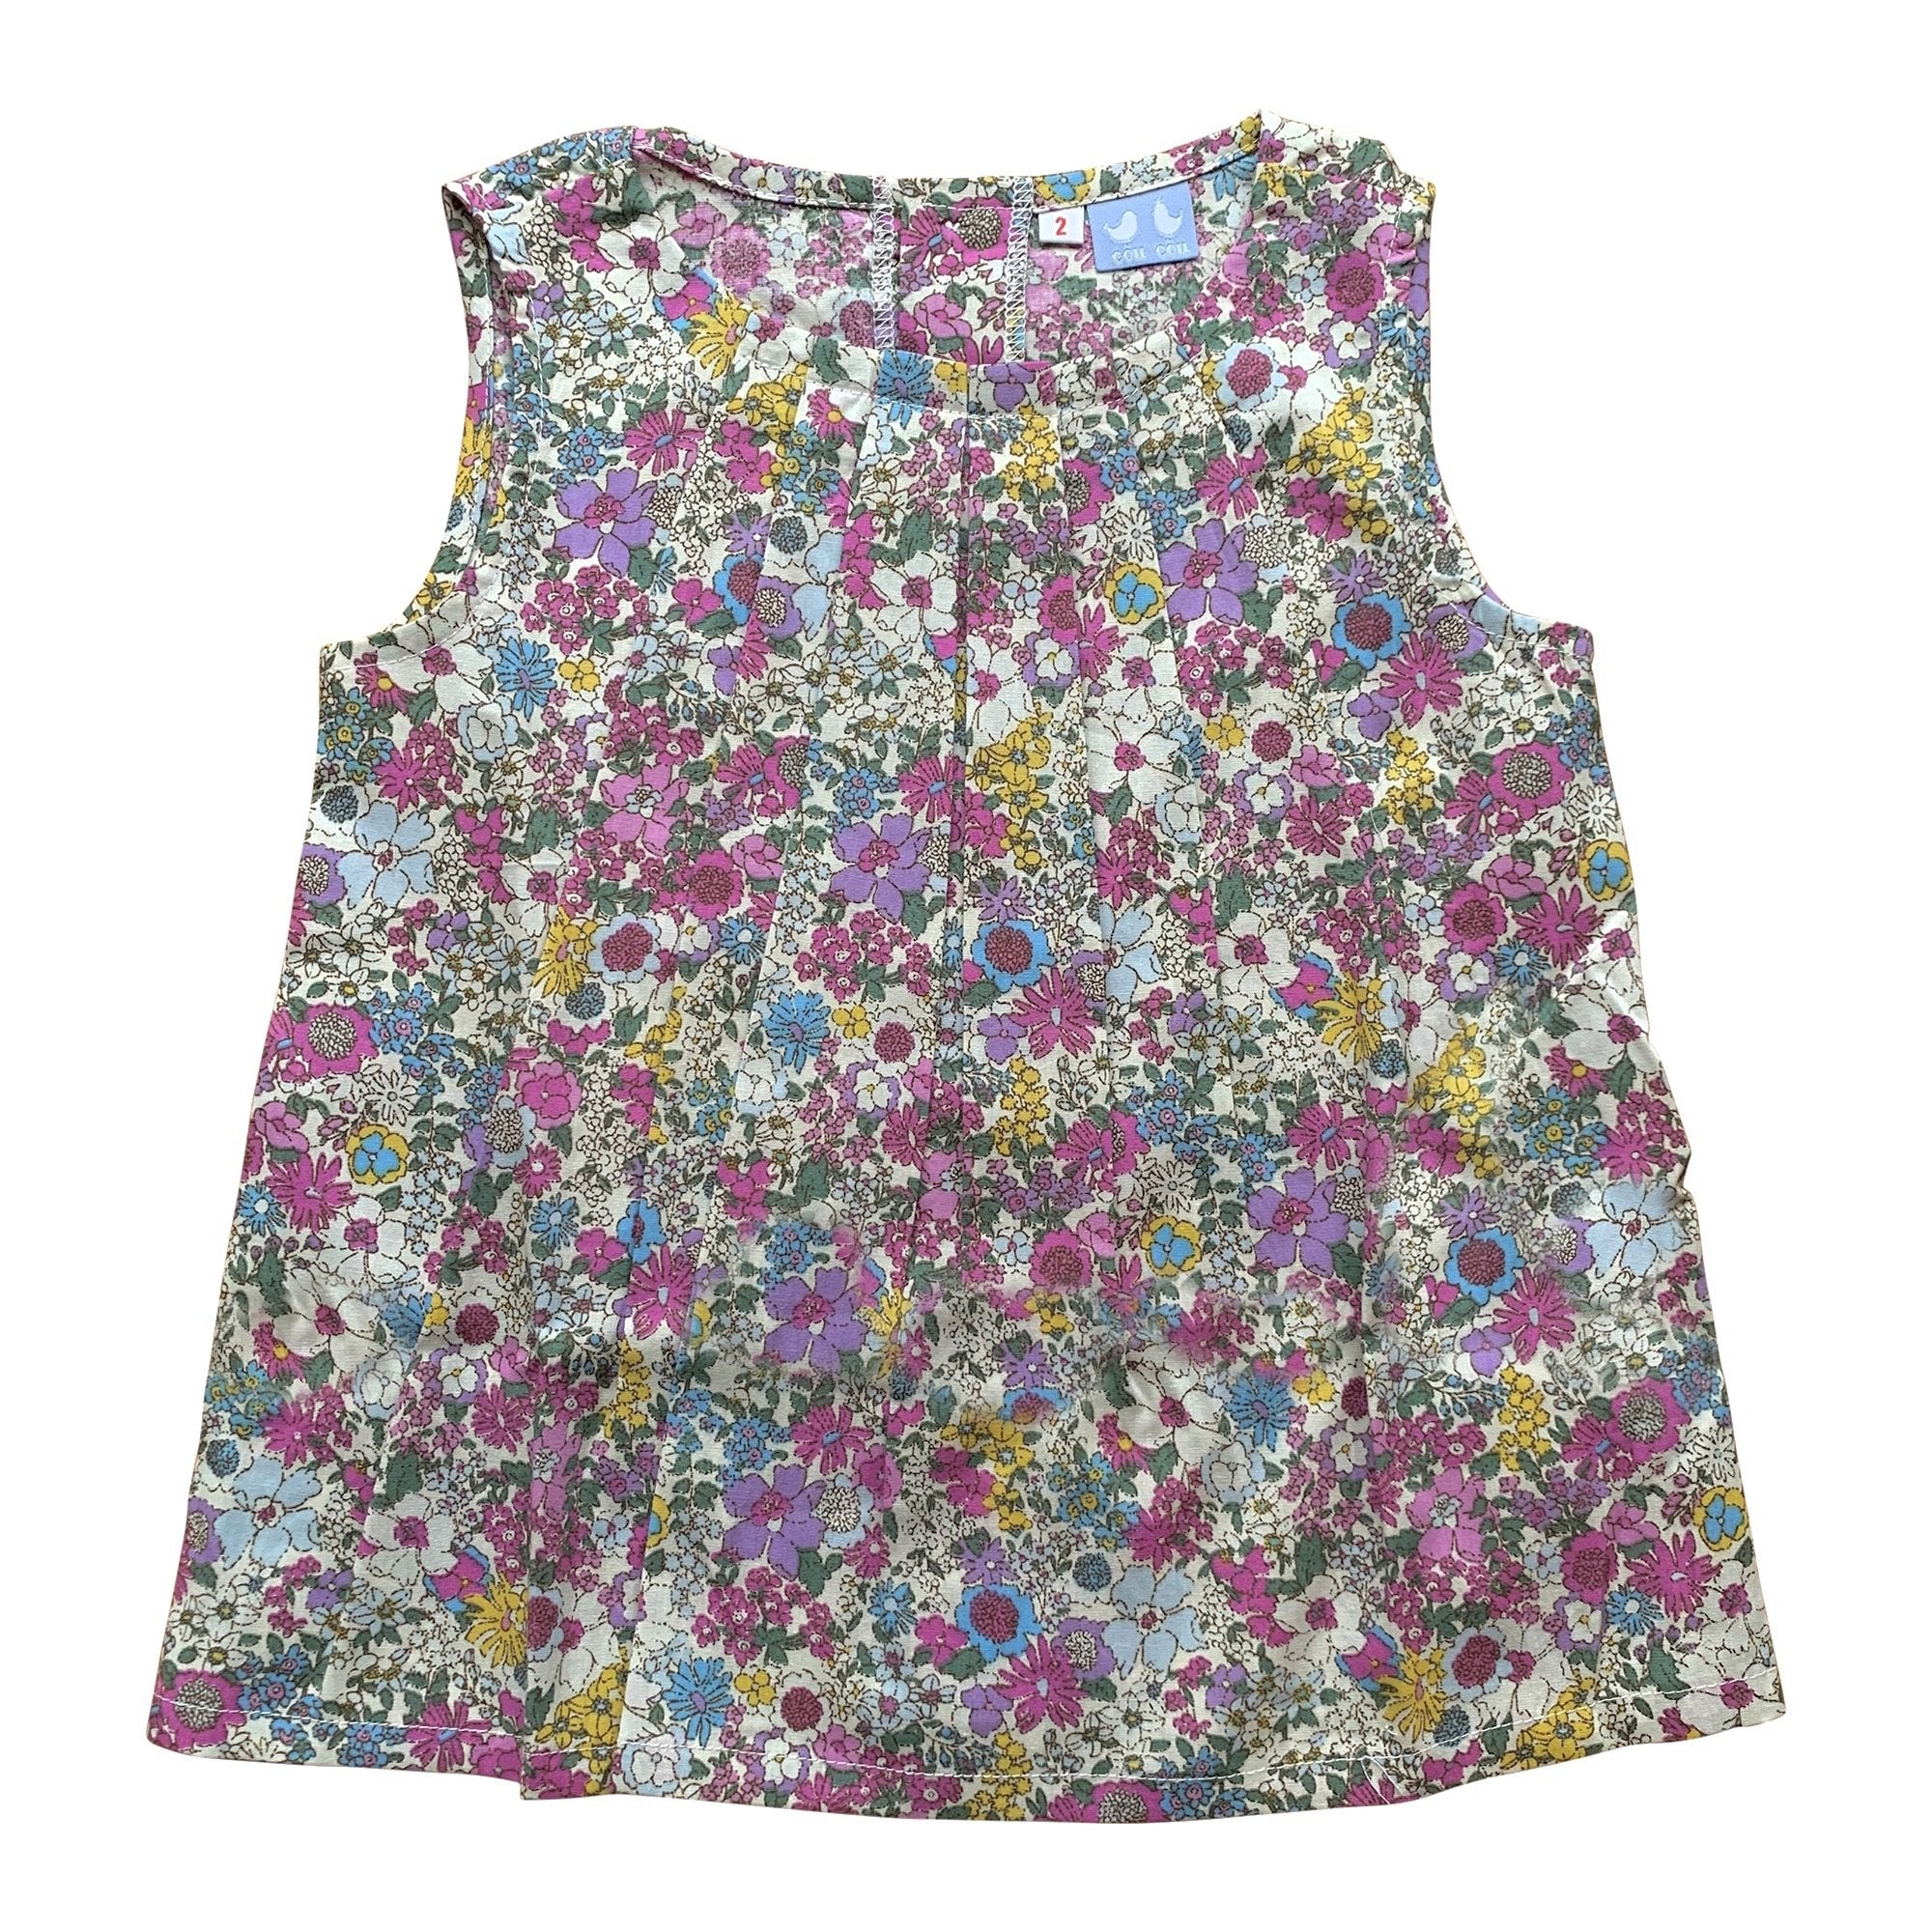 FLORRIE BLOOMERS IN PURPLE LIBERTY PRINT